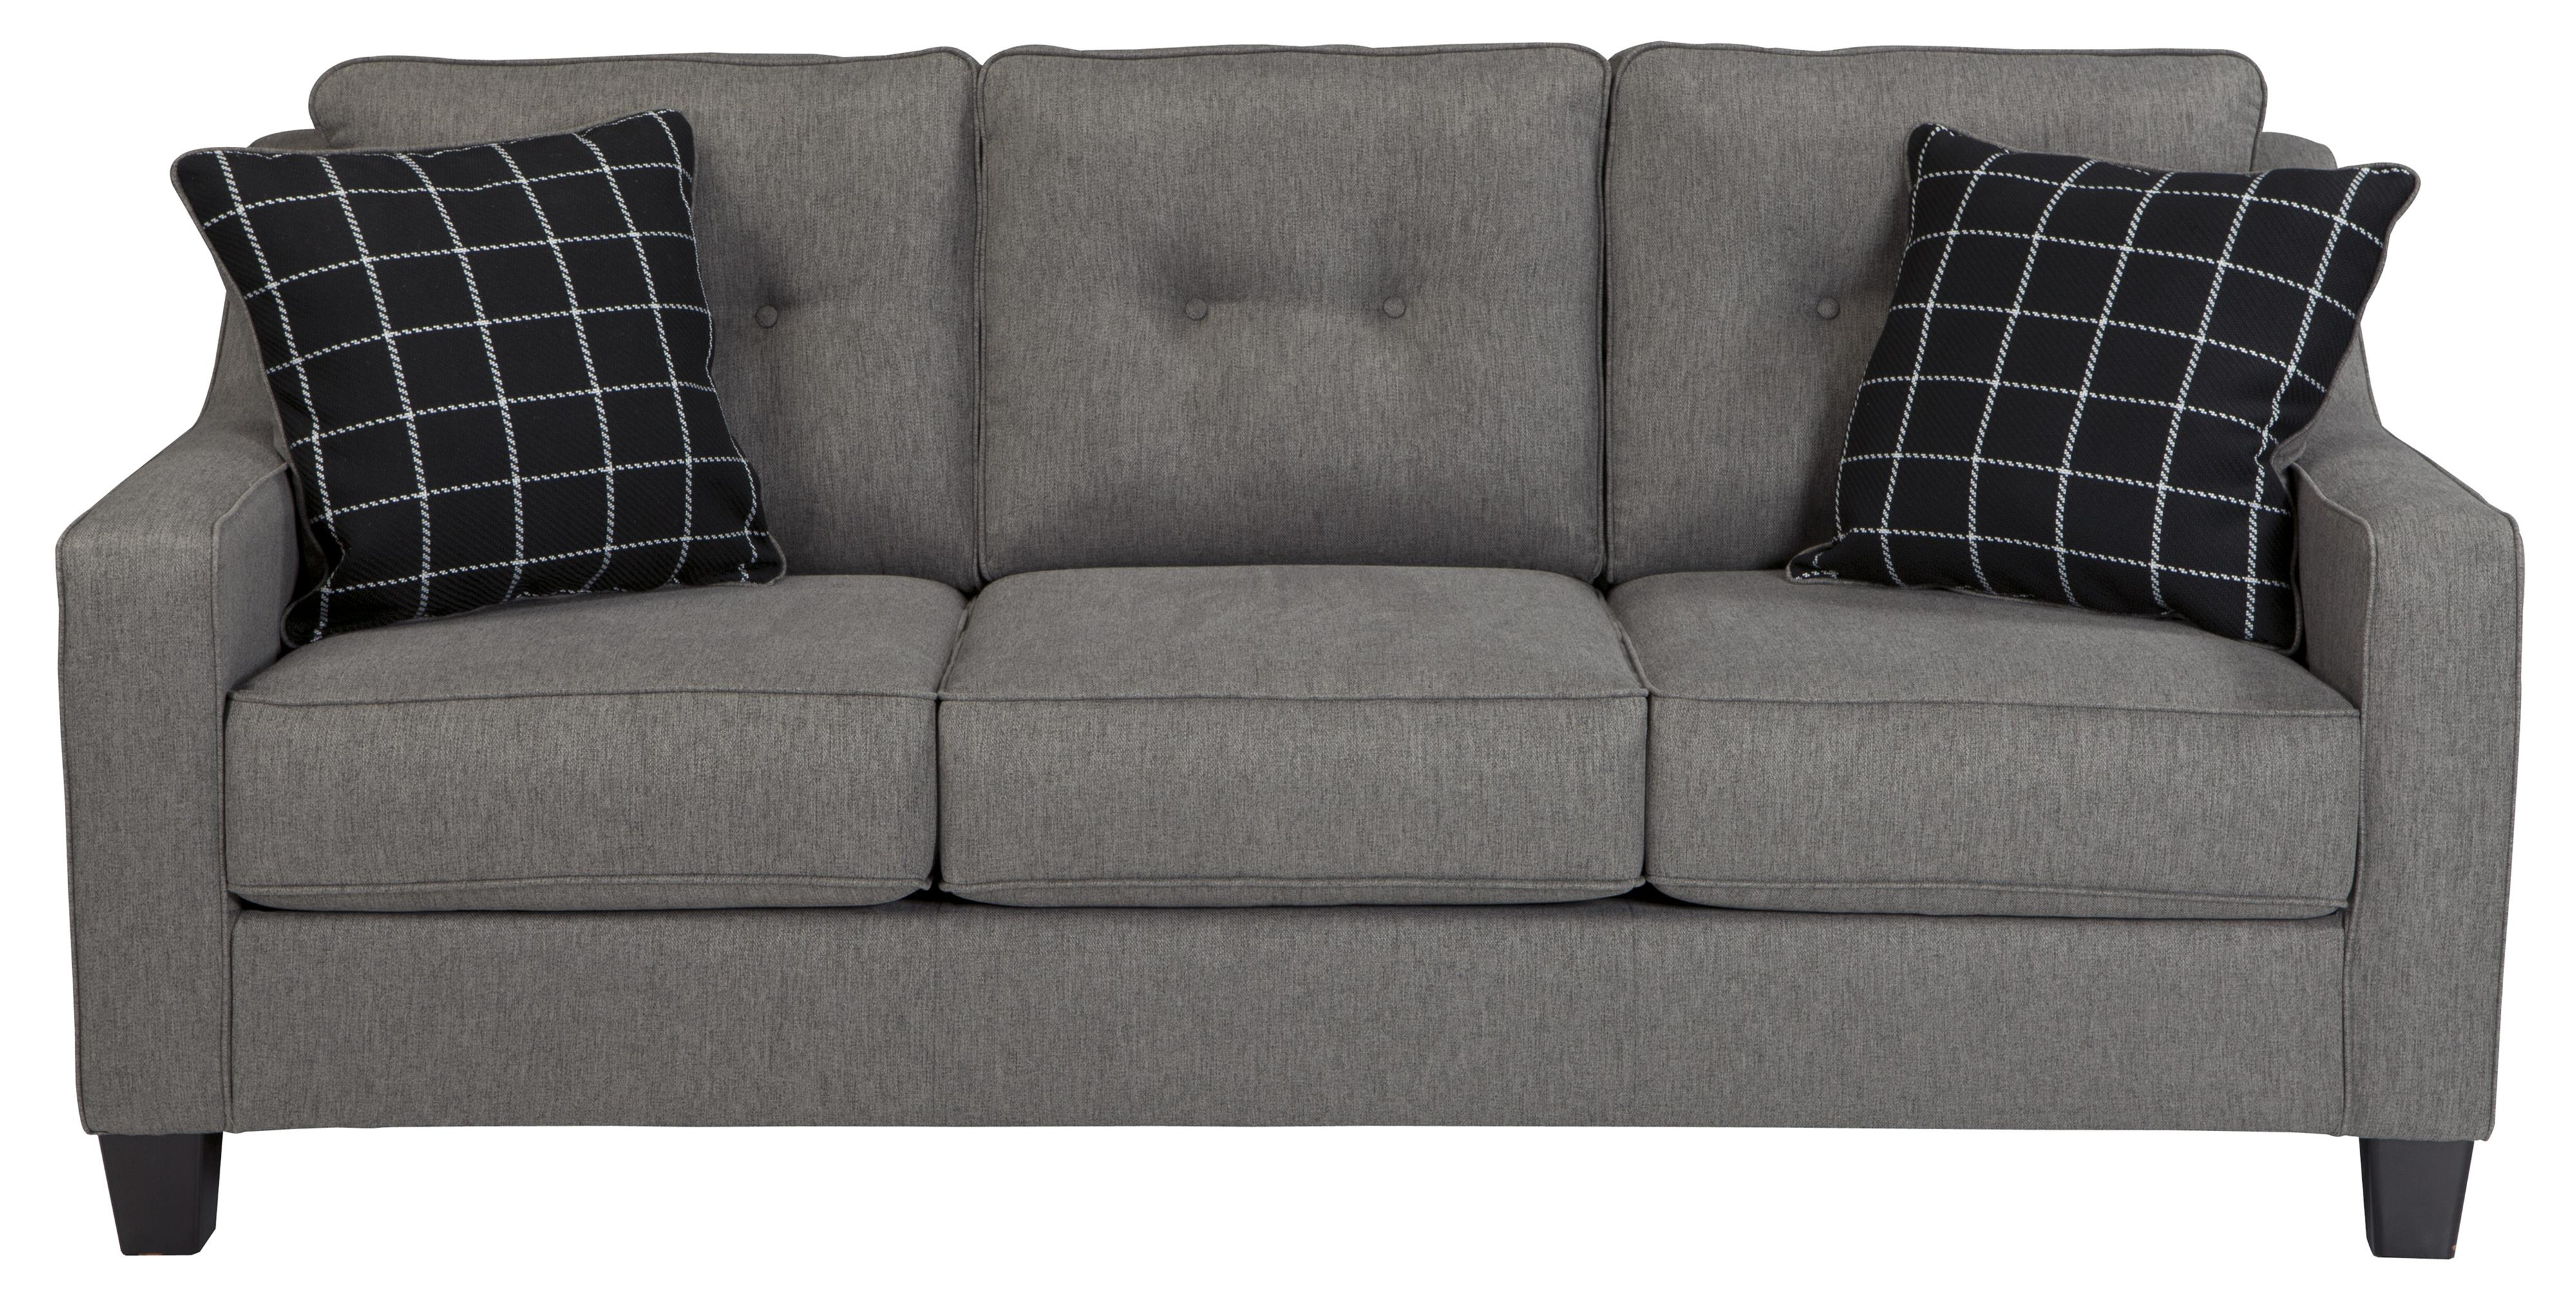 Queen Sofa Bed Brindon Contemporary Queen Sofa Sleeper With Track Arms Tufted Back By Benchcraft At Household Furniture